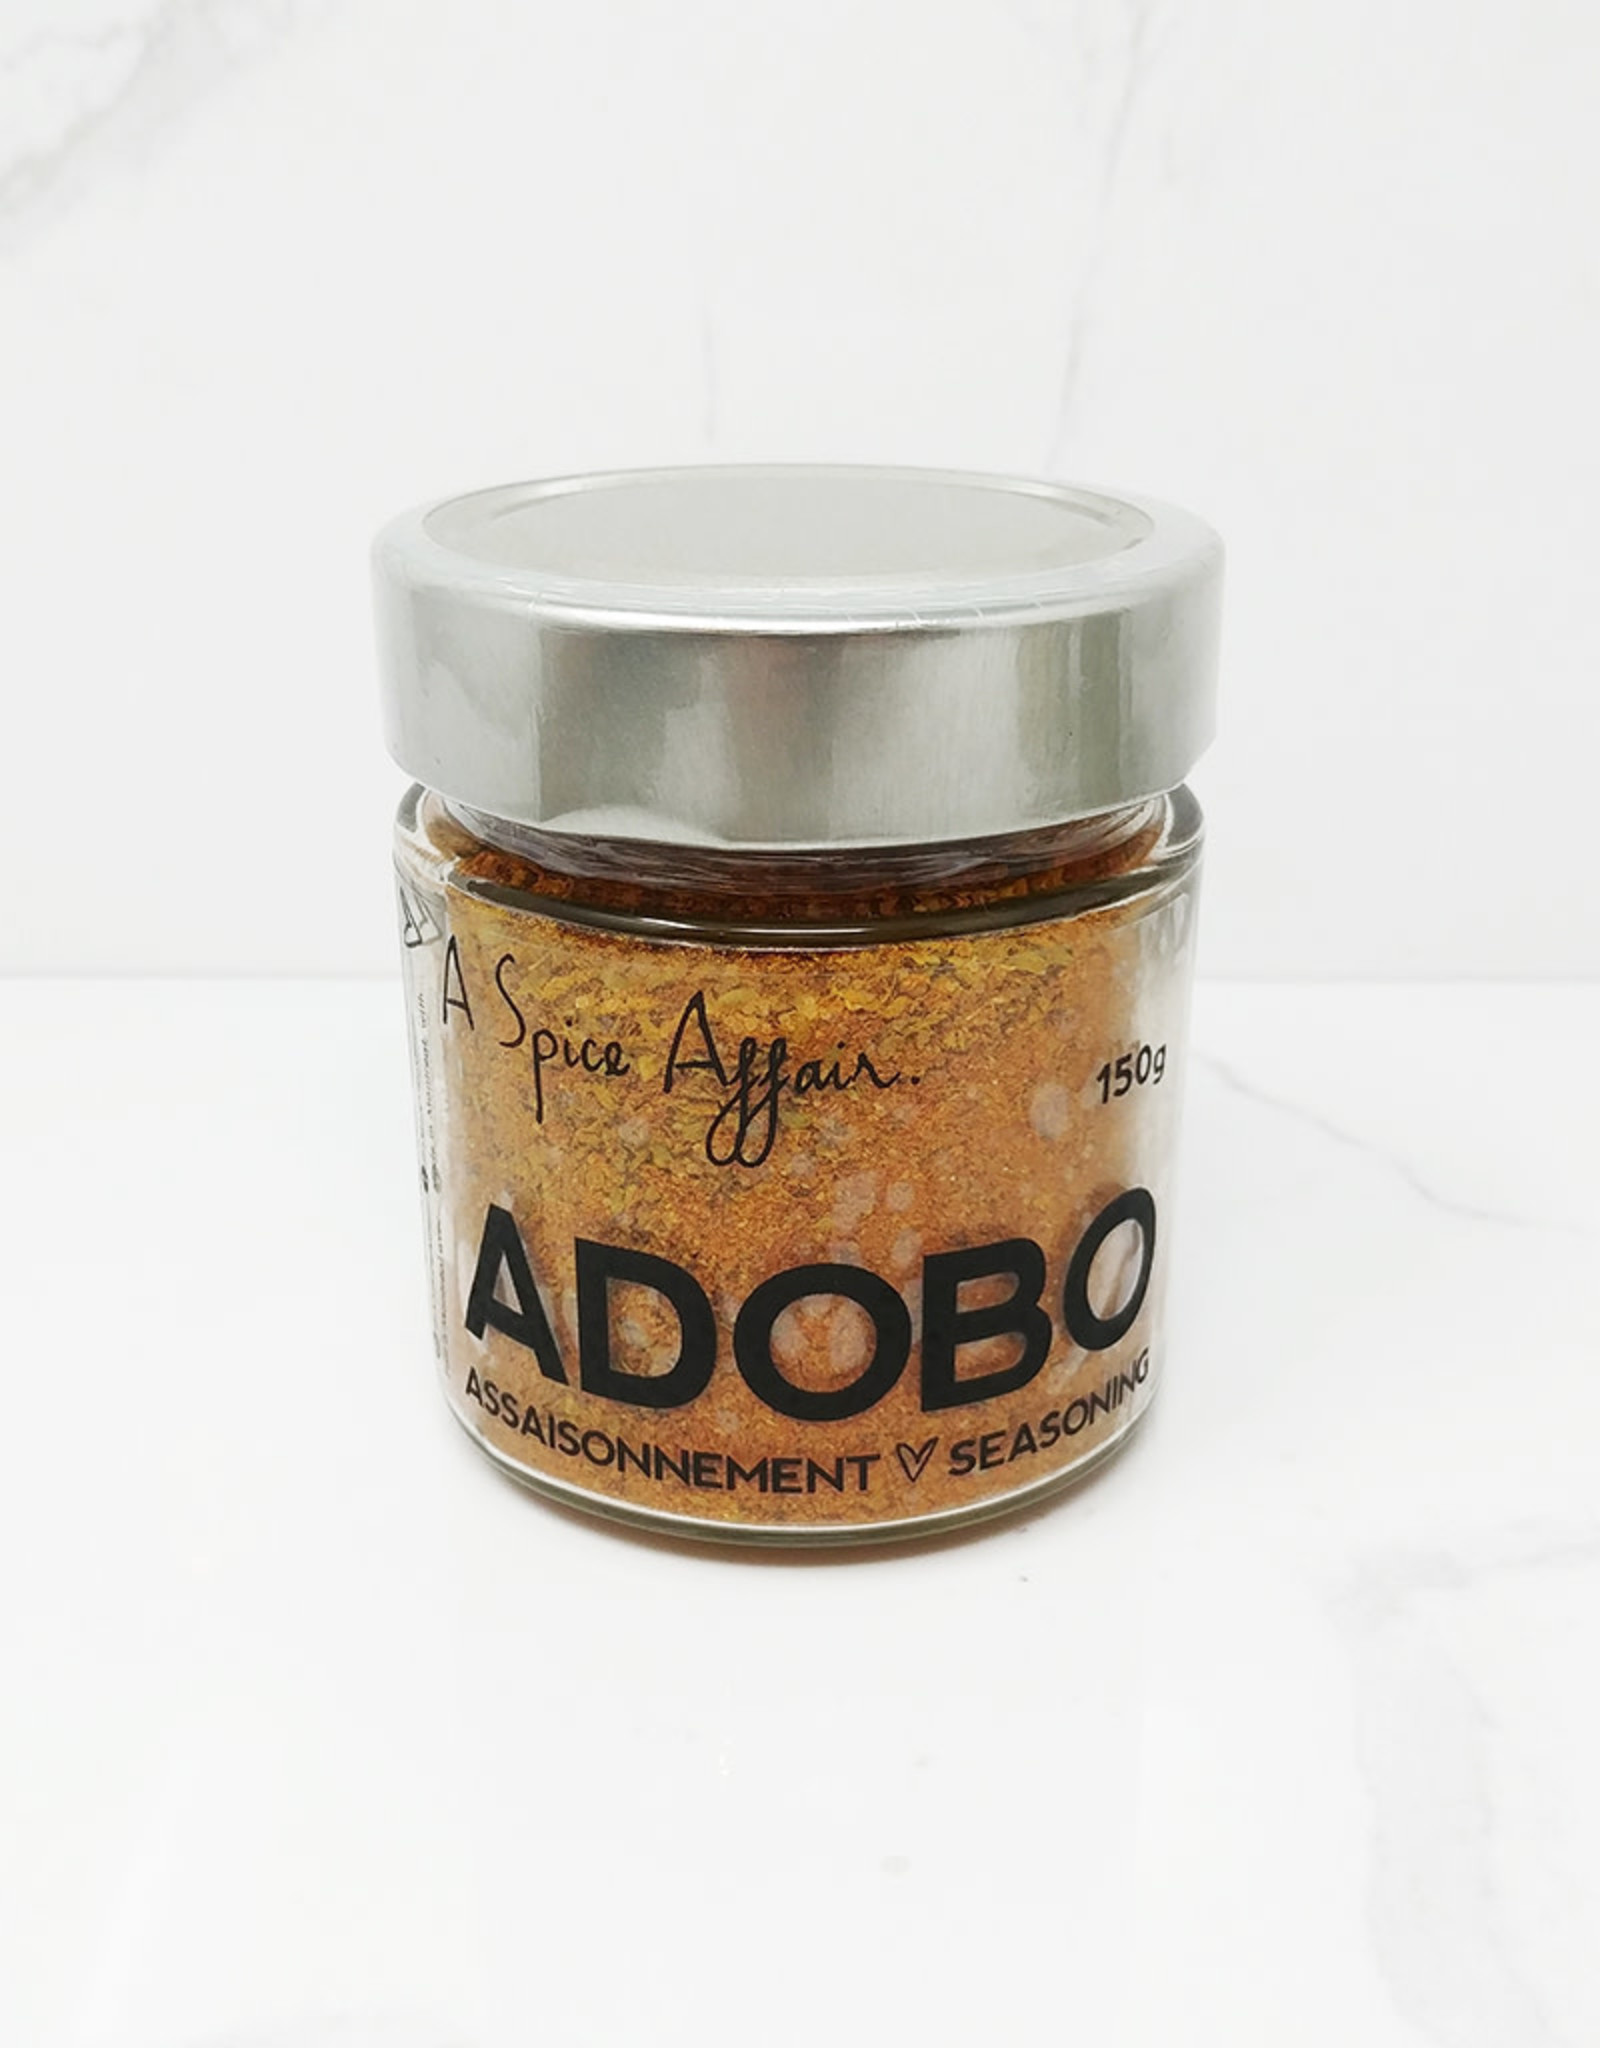 A Spice Affair A Spice Affair - Adobo Seasoning